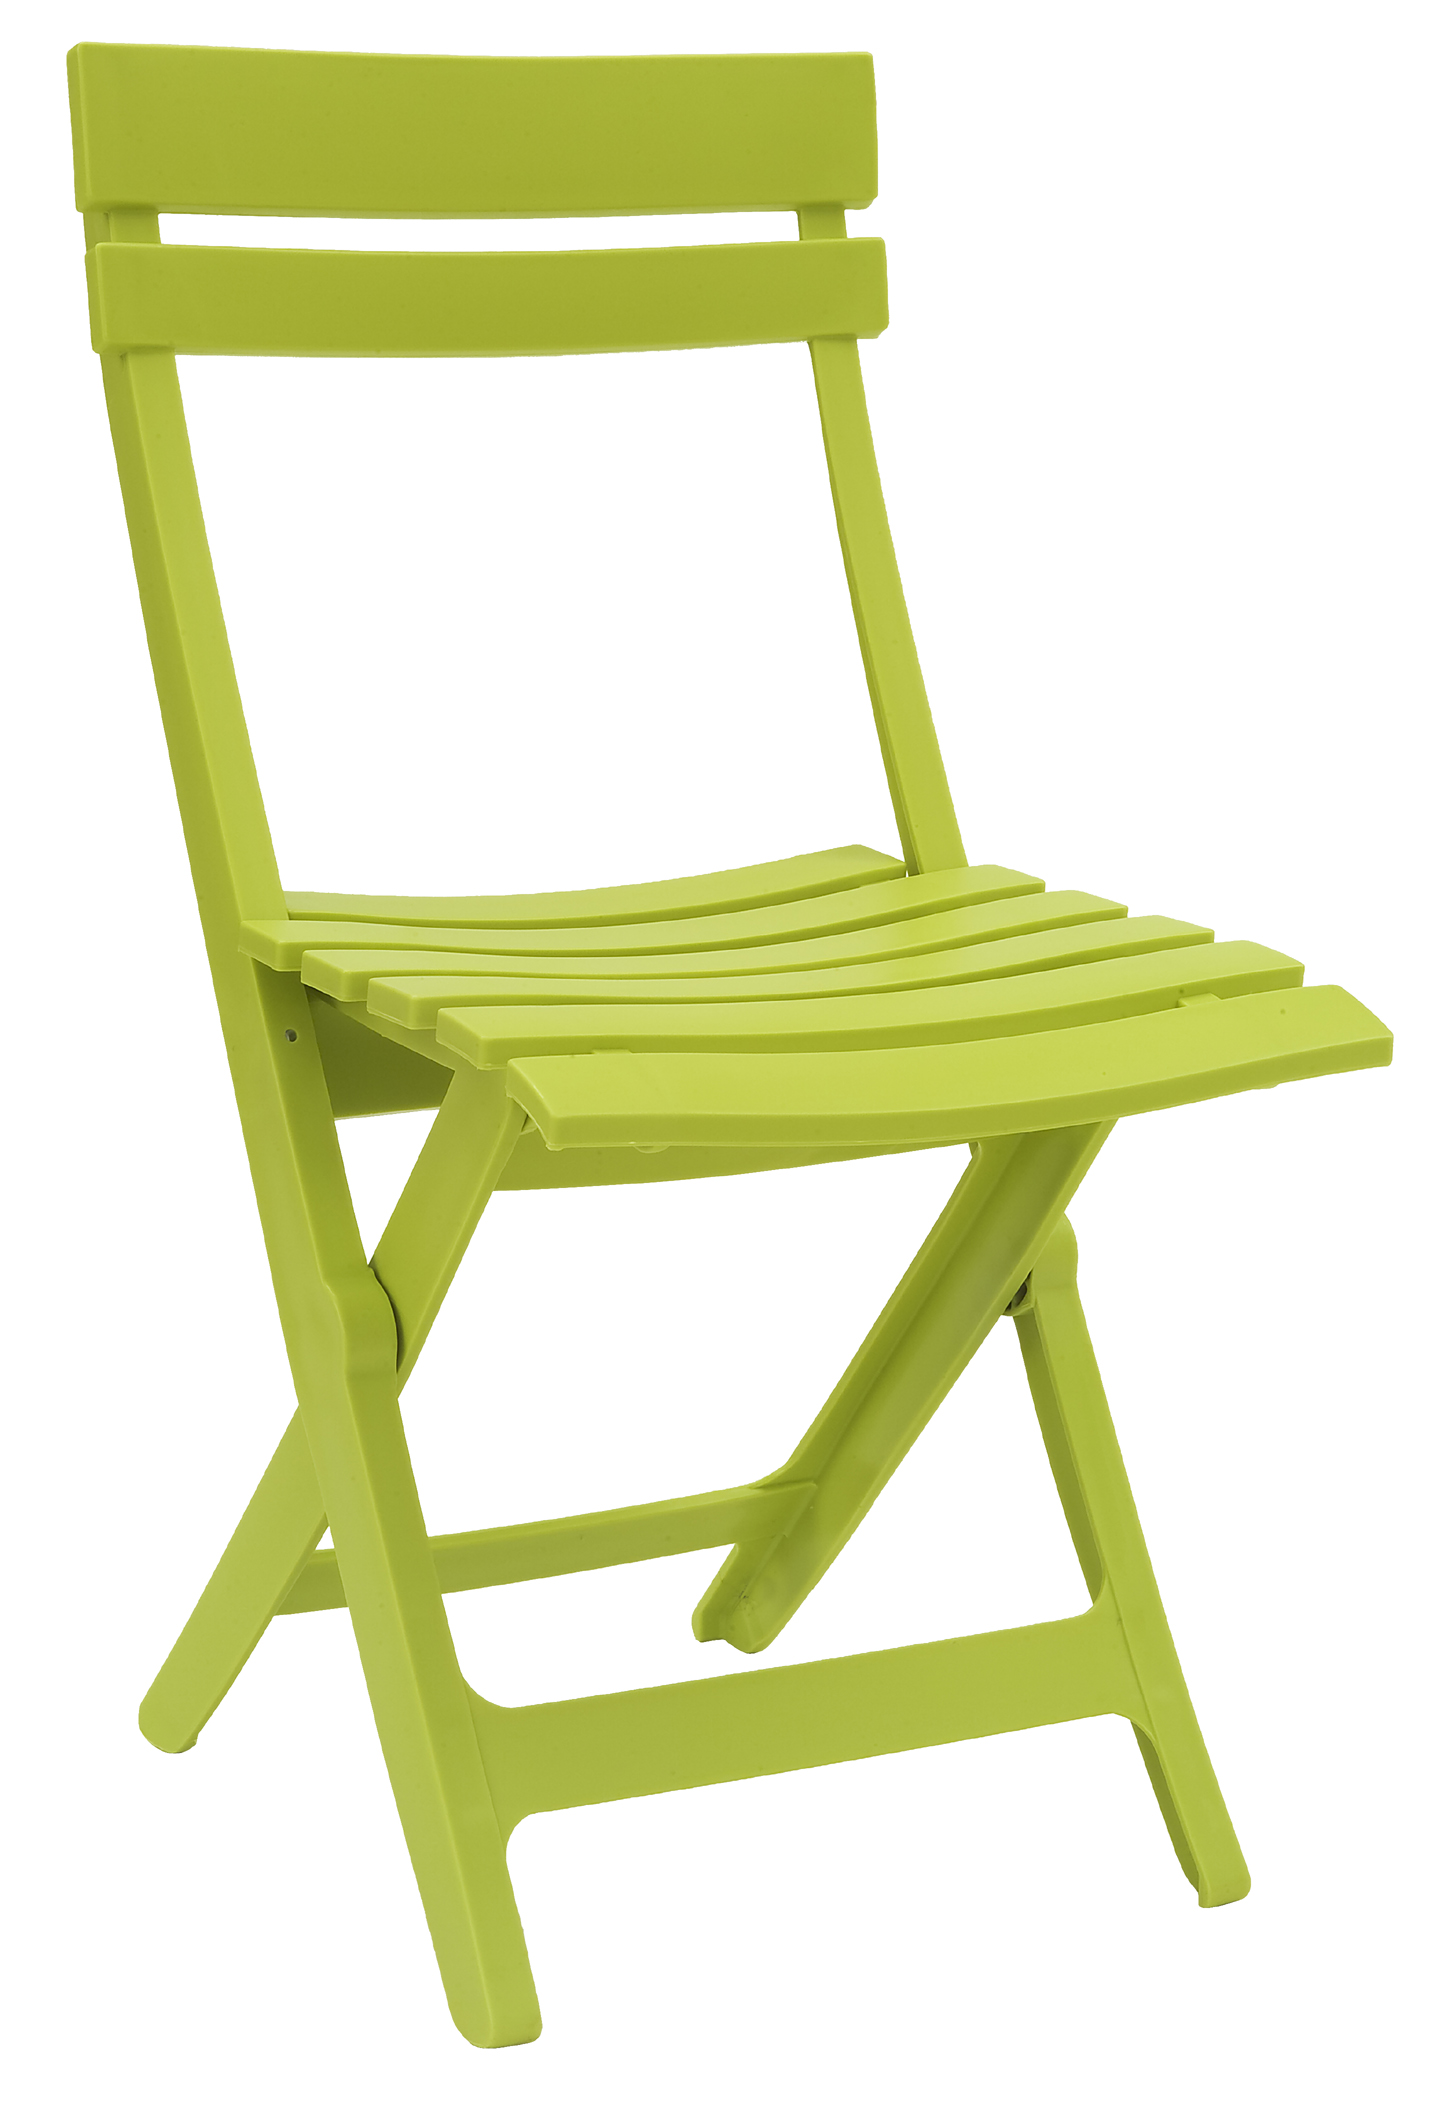 MIAMI folding chair Classique